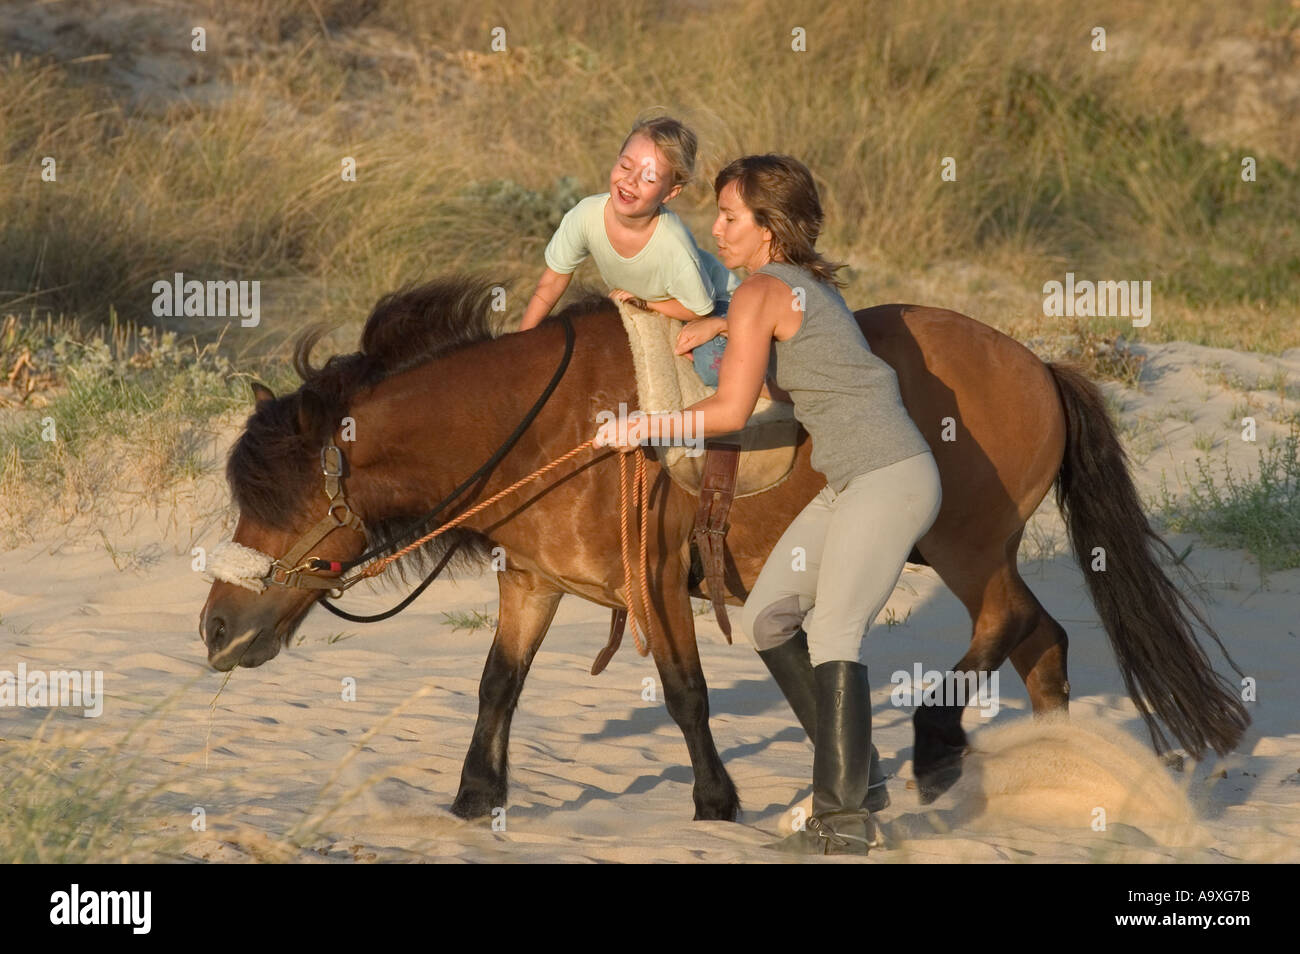 Mother And Daughter Horse Riding Outdoors Stock Photo Alamy